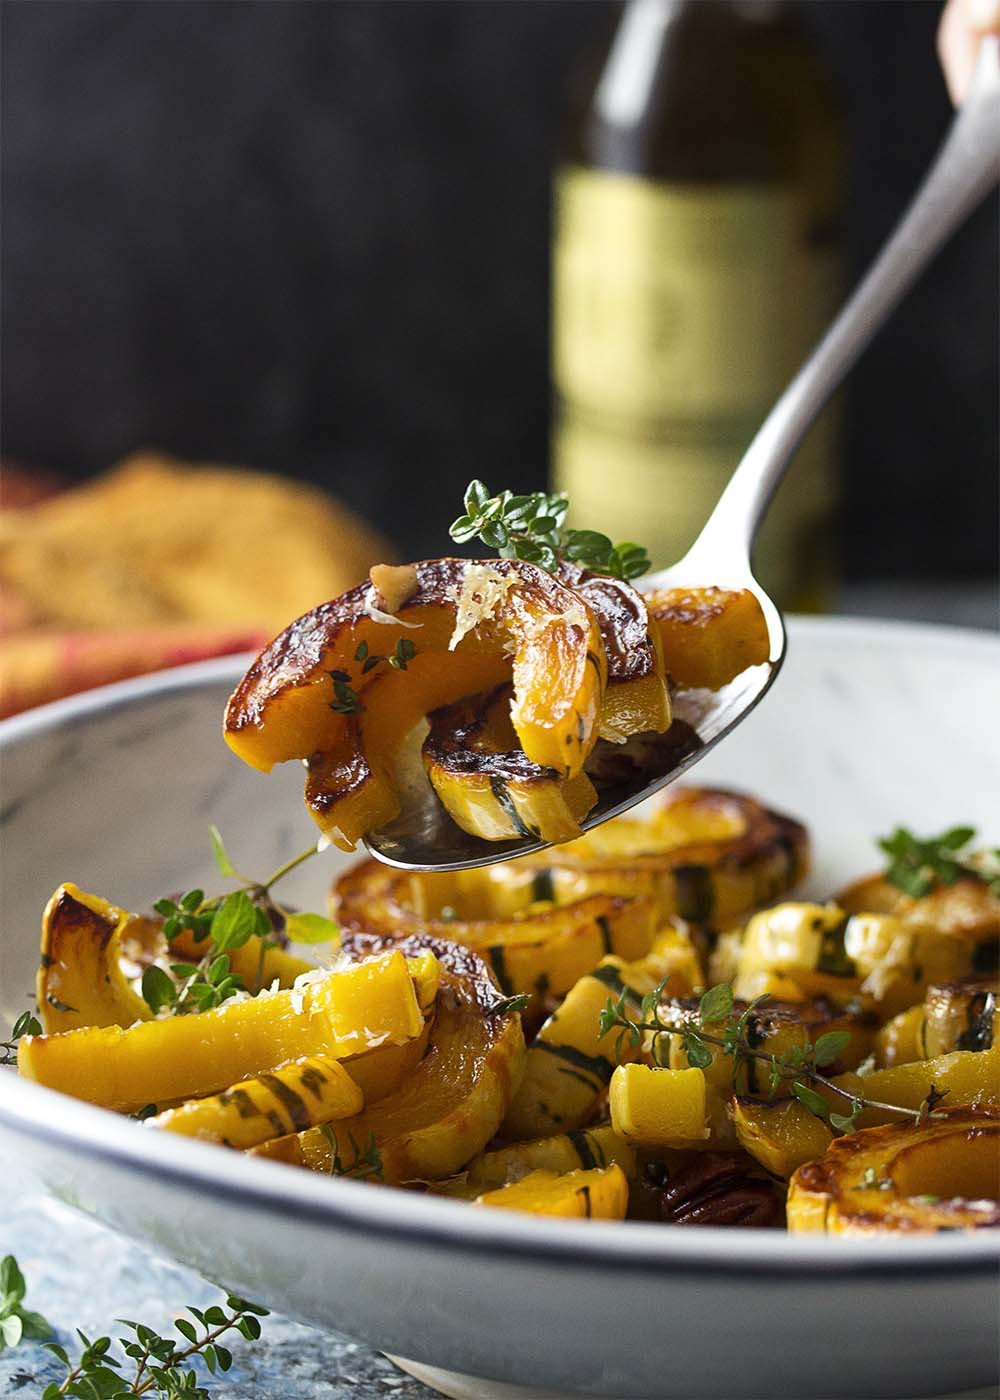 A spoon holding up several browned and roasted delicata squash rings from a serving bowl.